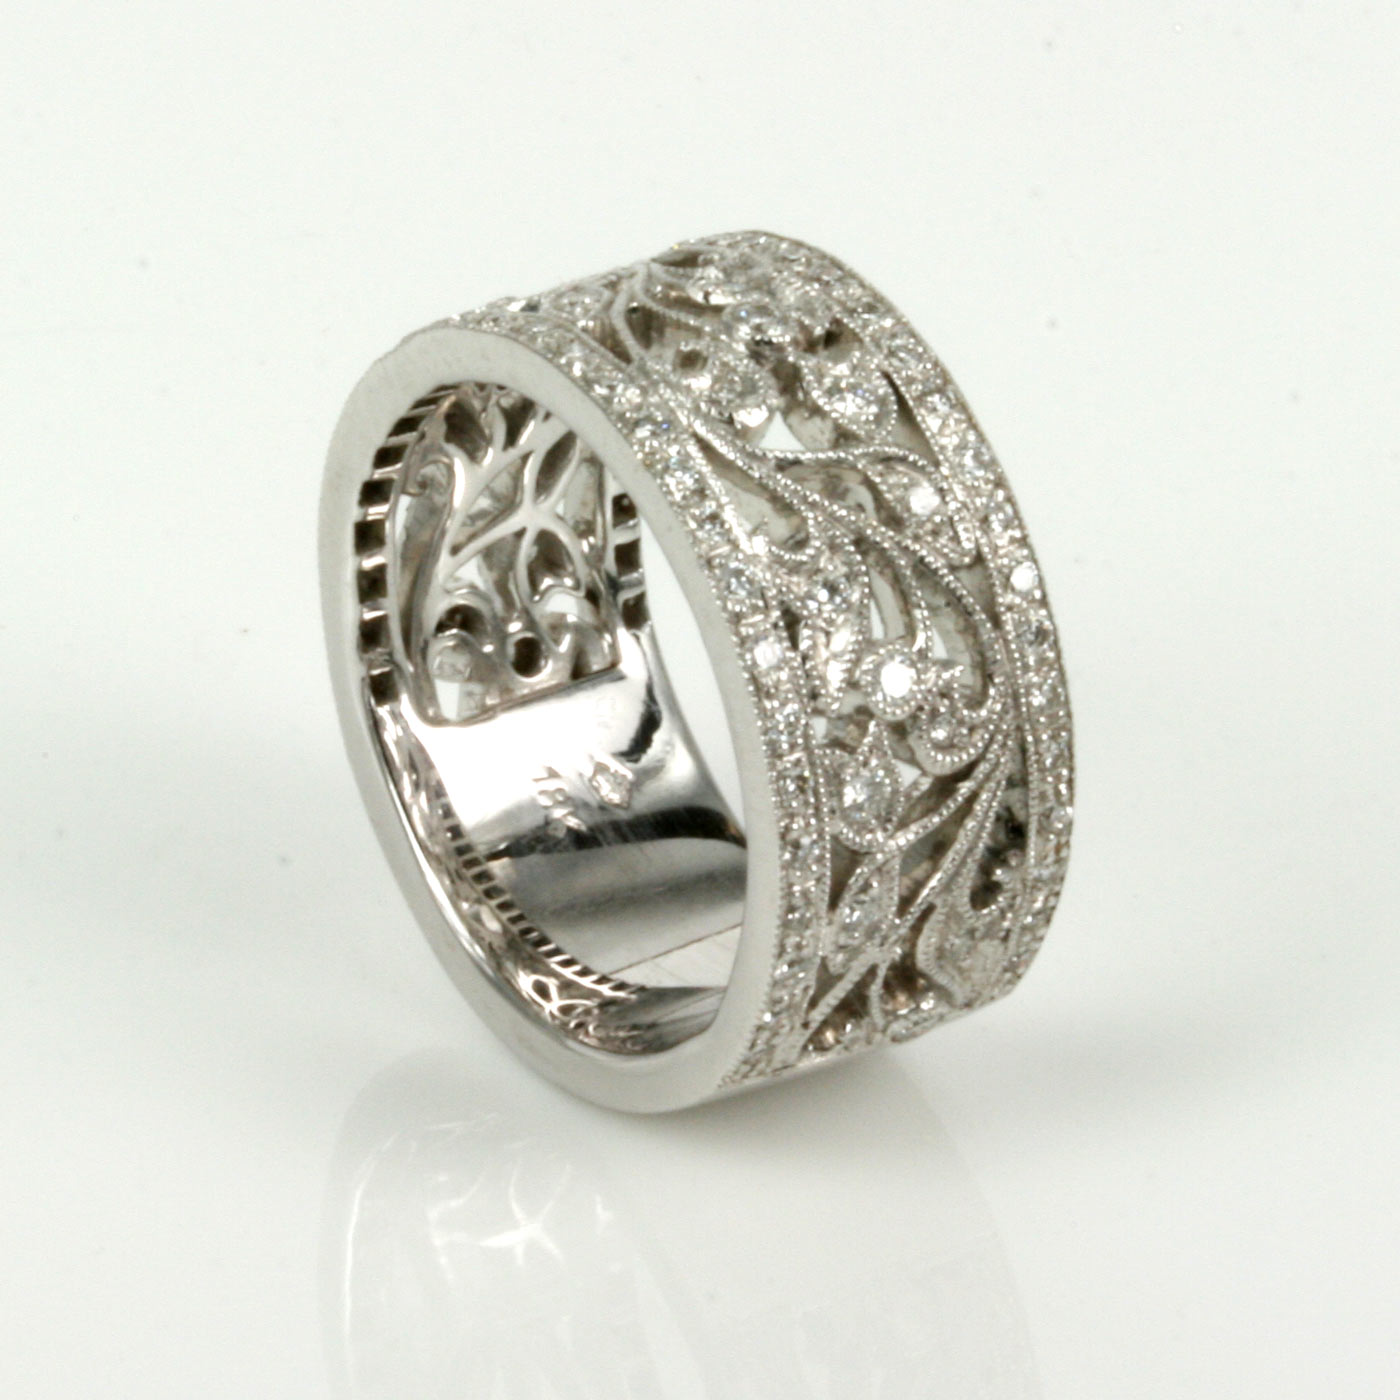 Buy 18ct White Gold Filigree Ring With 73 Diamonds Sold